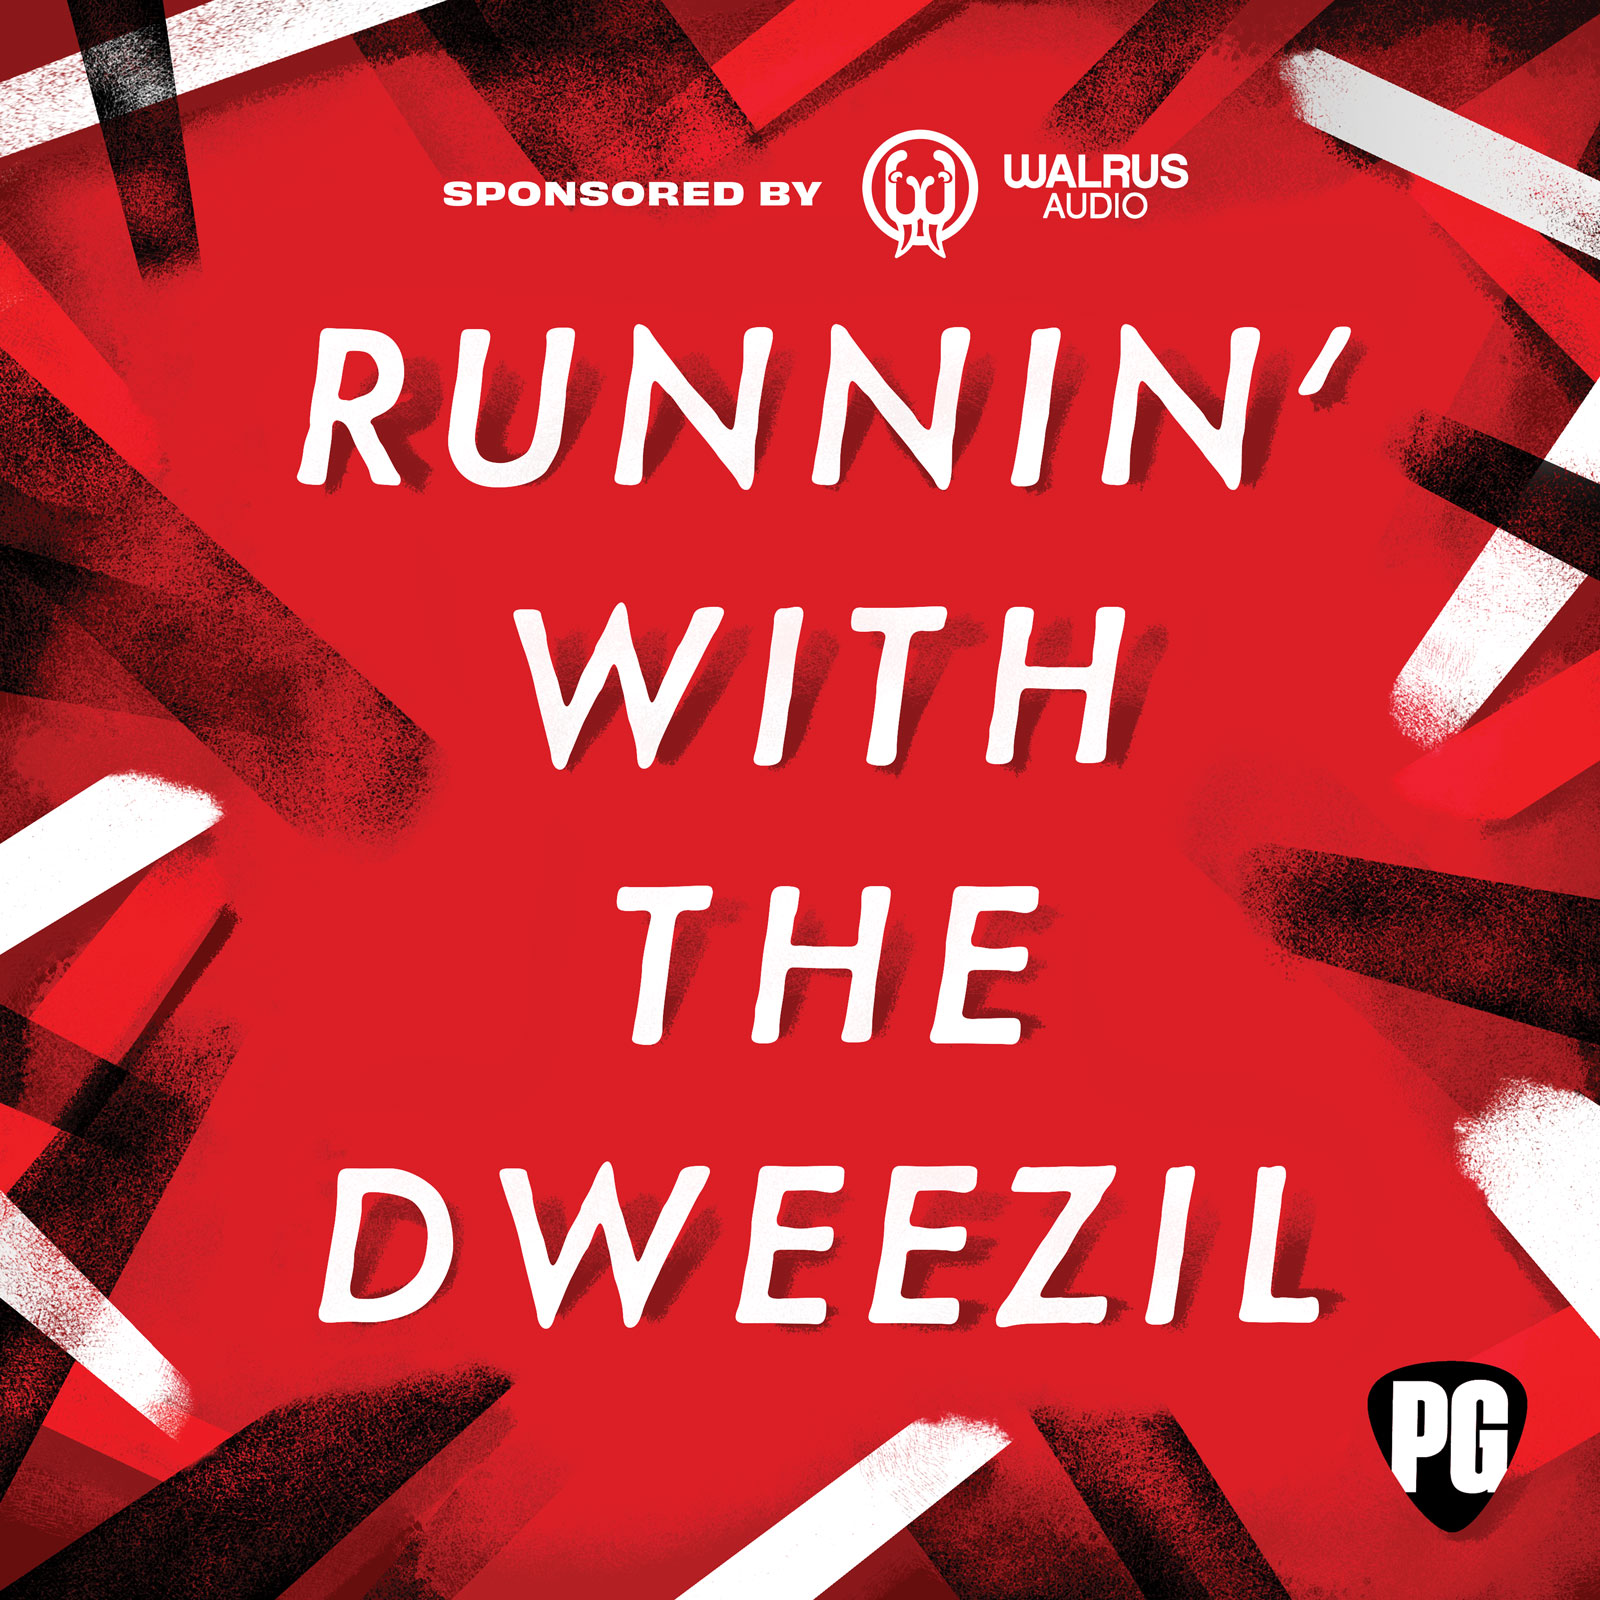 Artwork for podcast Runnin' With the Dweezil